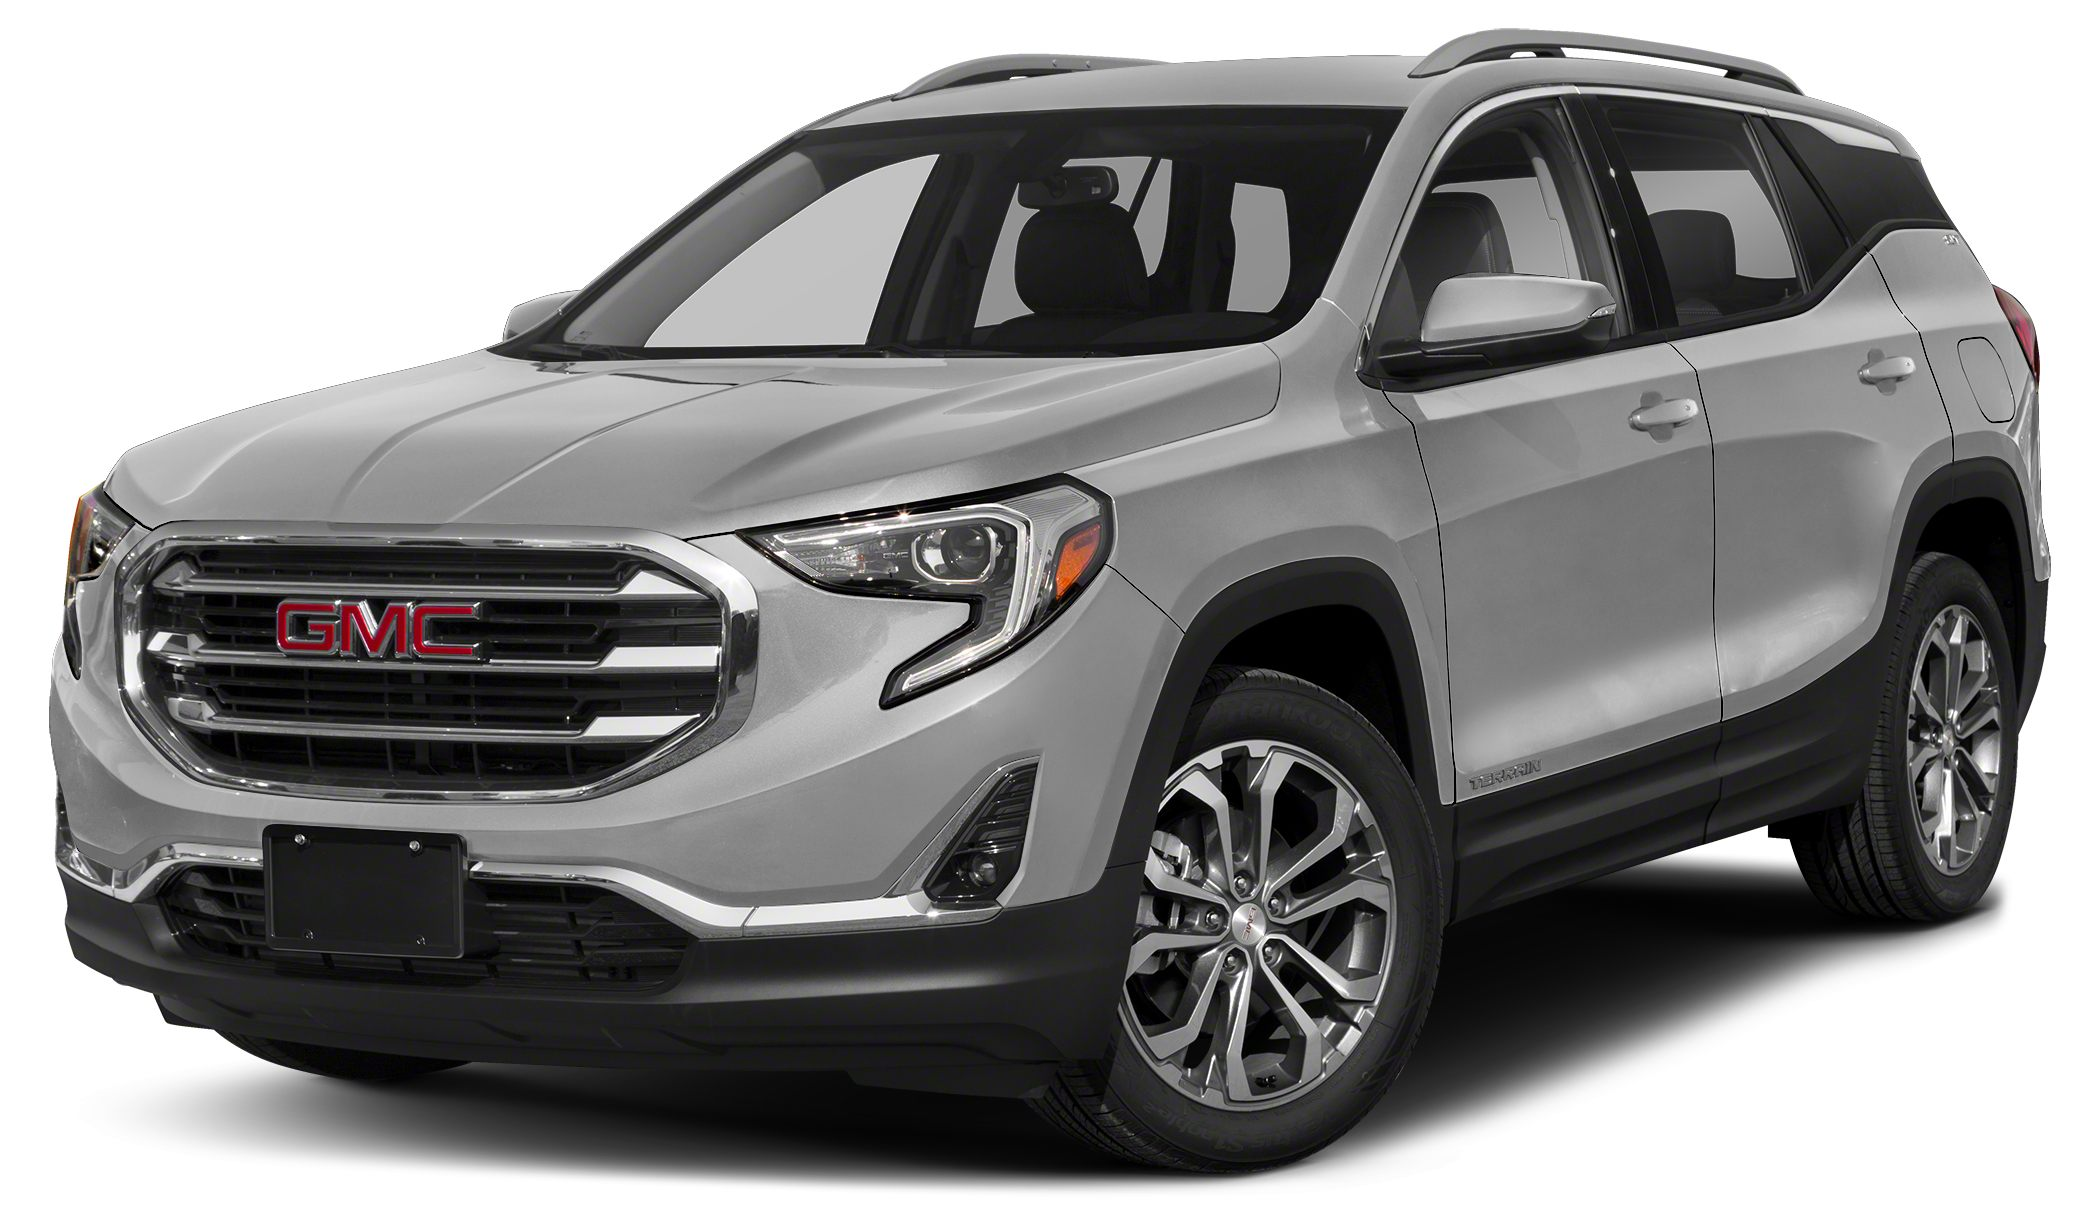 2018 GMC Terrain SLT Make sure to get your hands on this 2018 GMC Terrain SLT with a push button s